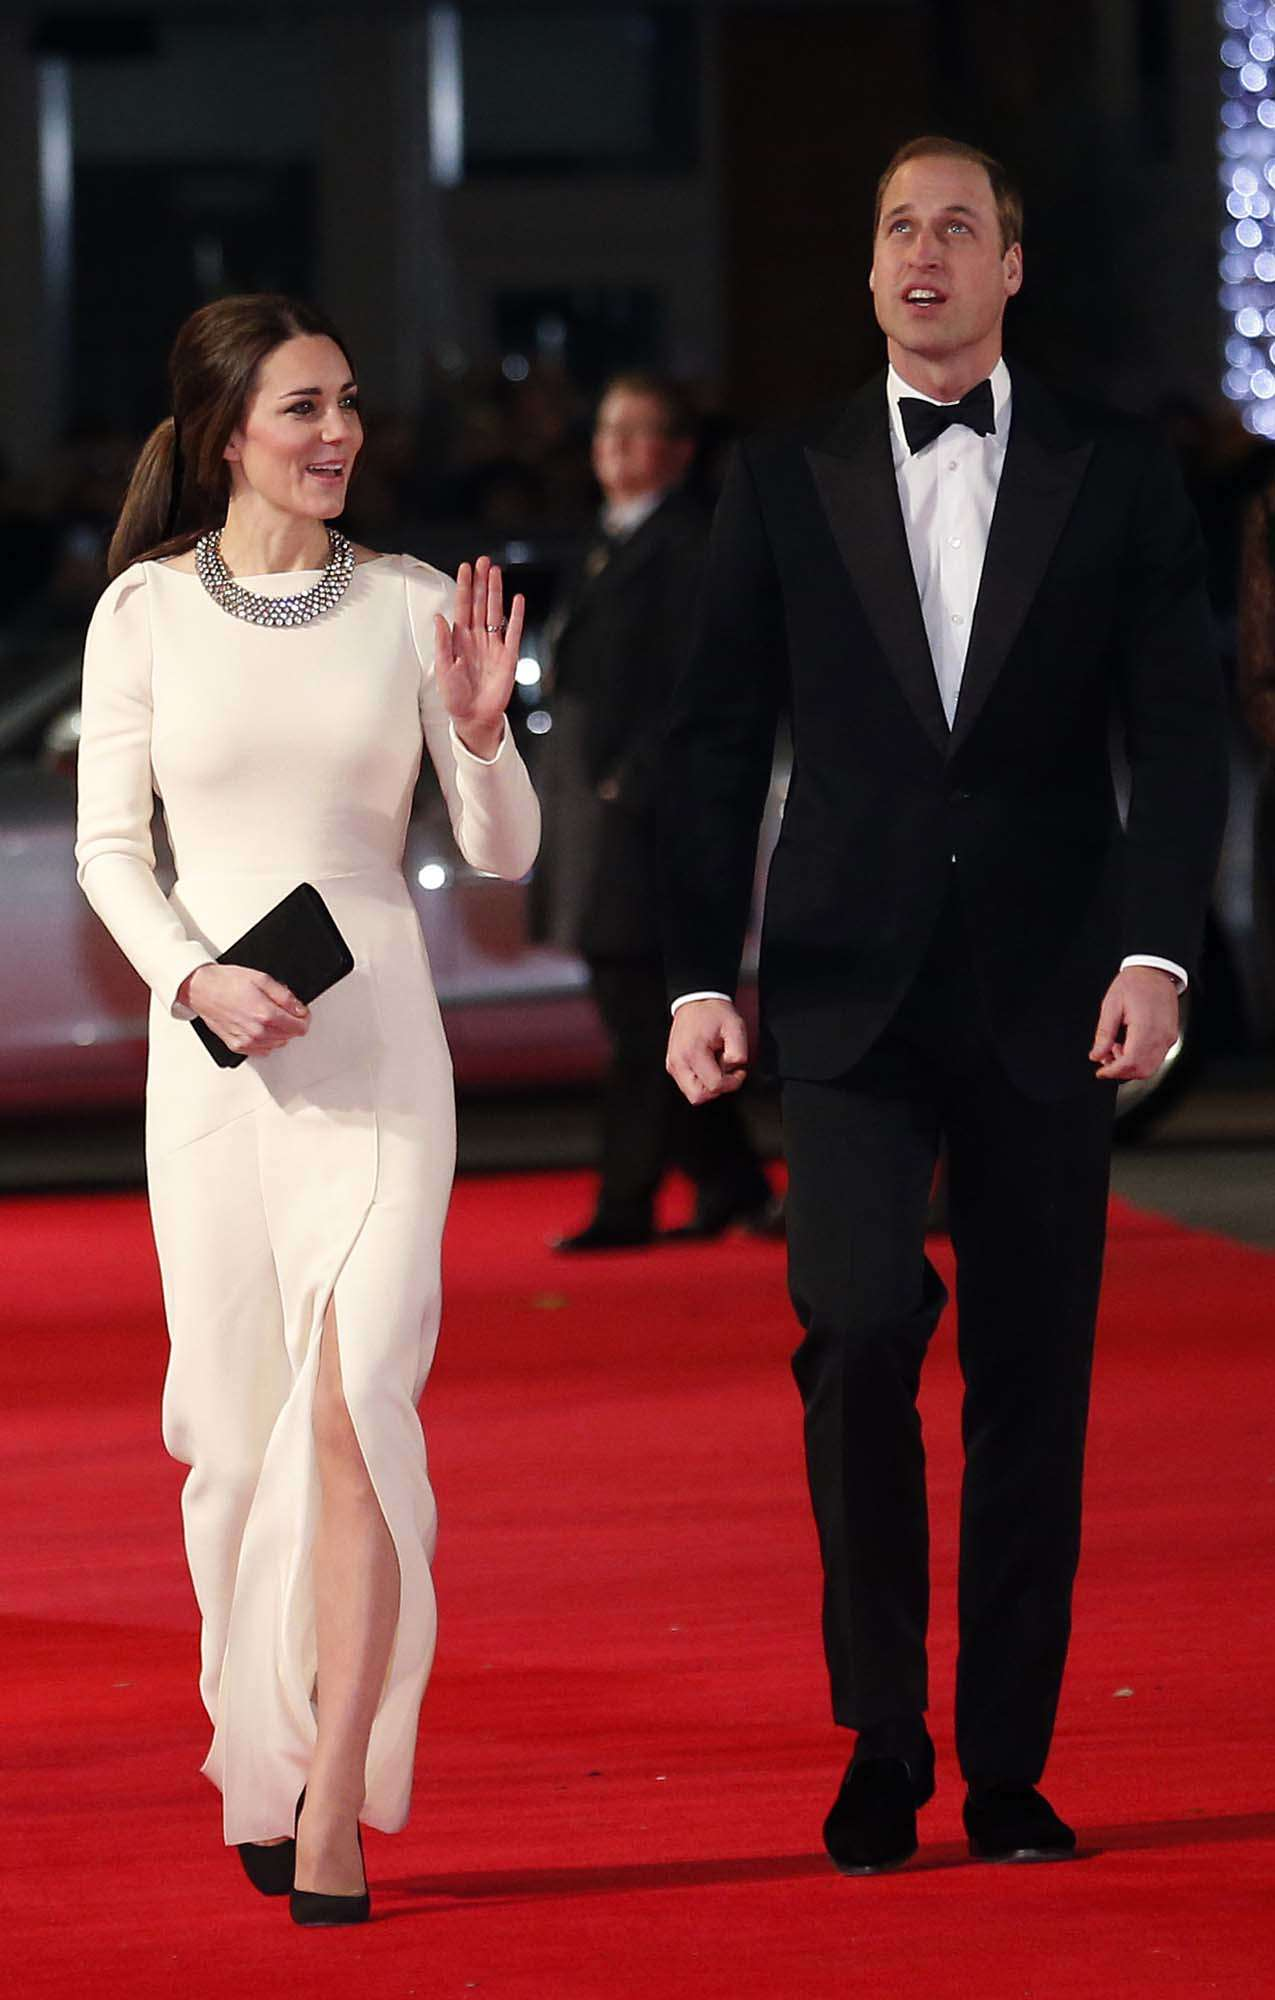 25 show stopping looks of Catherine, the Duchess of Cambridge